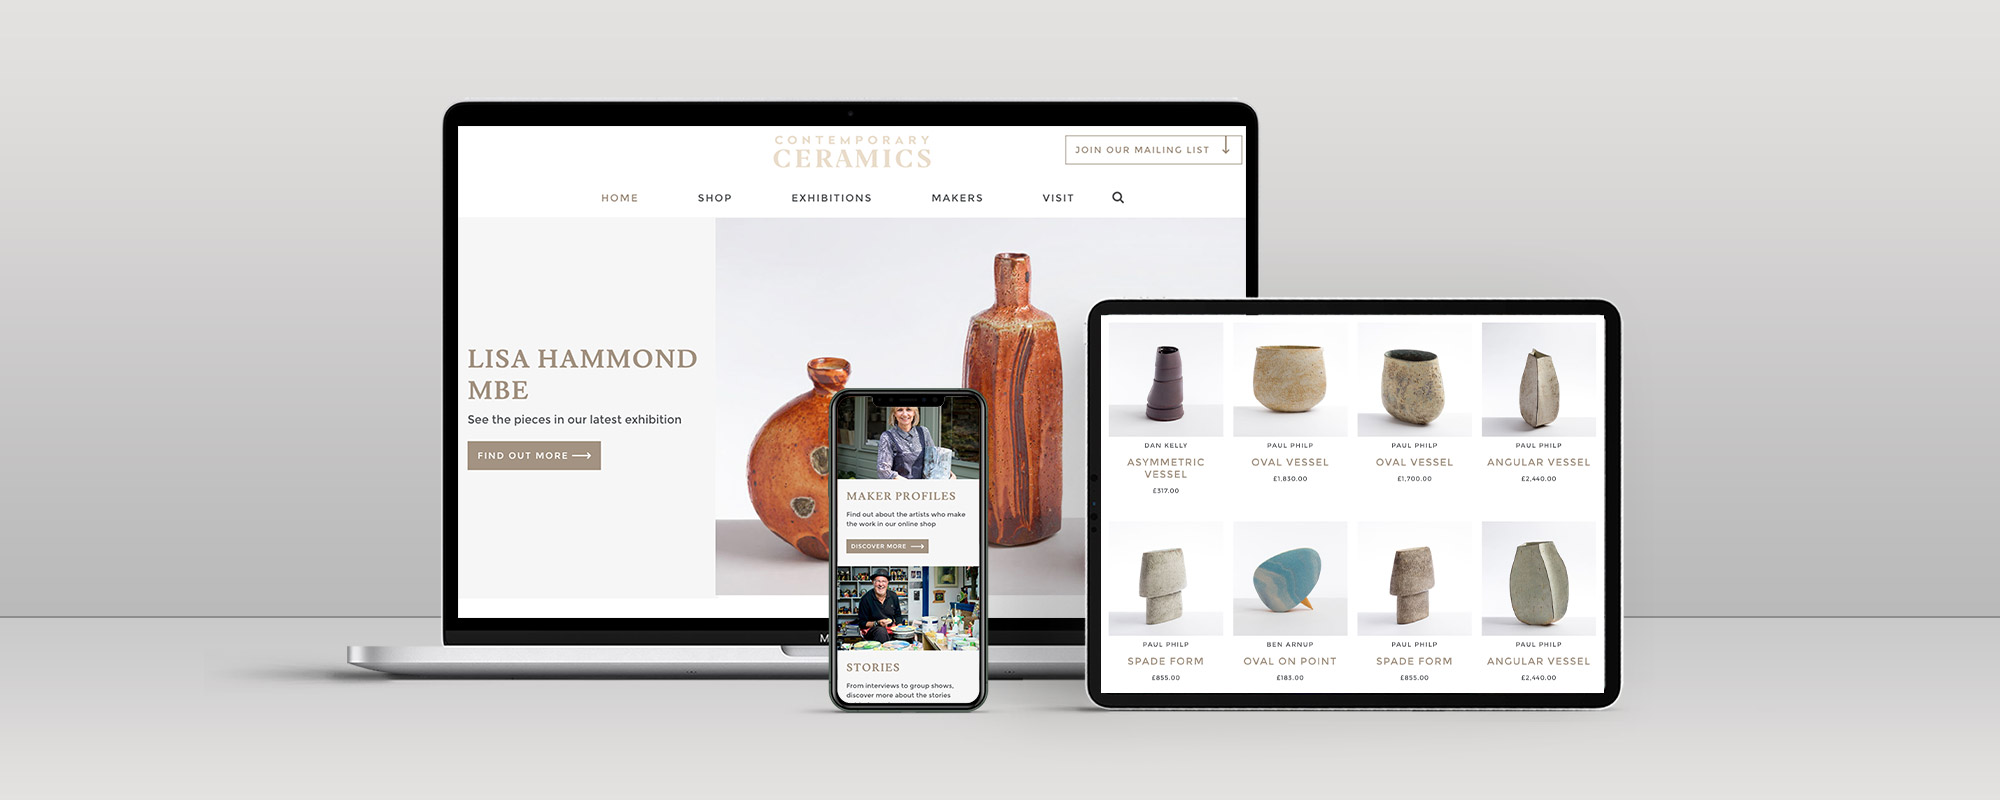 Contemporary Ceramics Ecommerce Website Design on 3 Devices